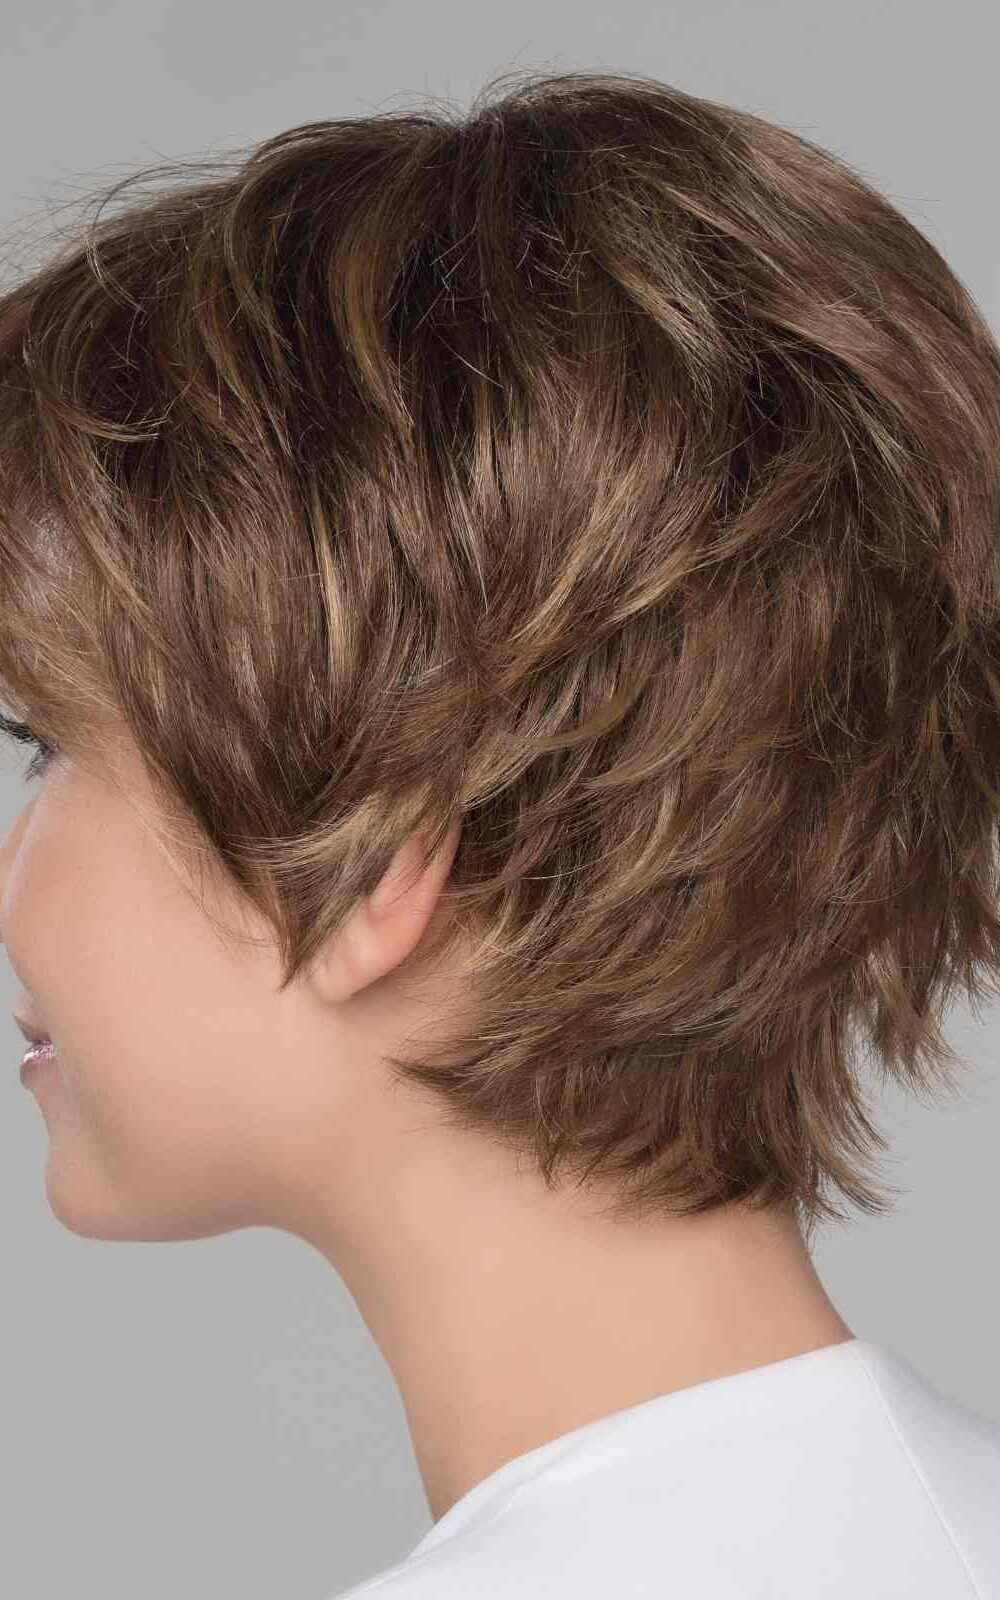 Flip Mono by Ellen Wille   Short Lace Front Synthetic Wig   Offers many styling options   Elly-K.com.au